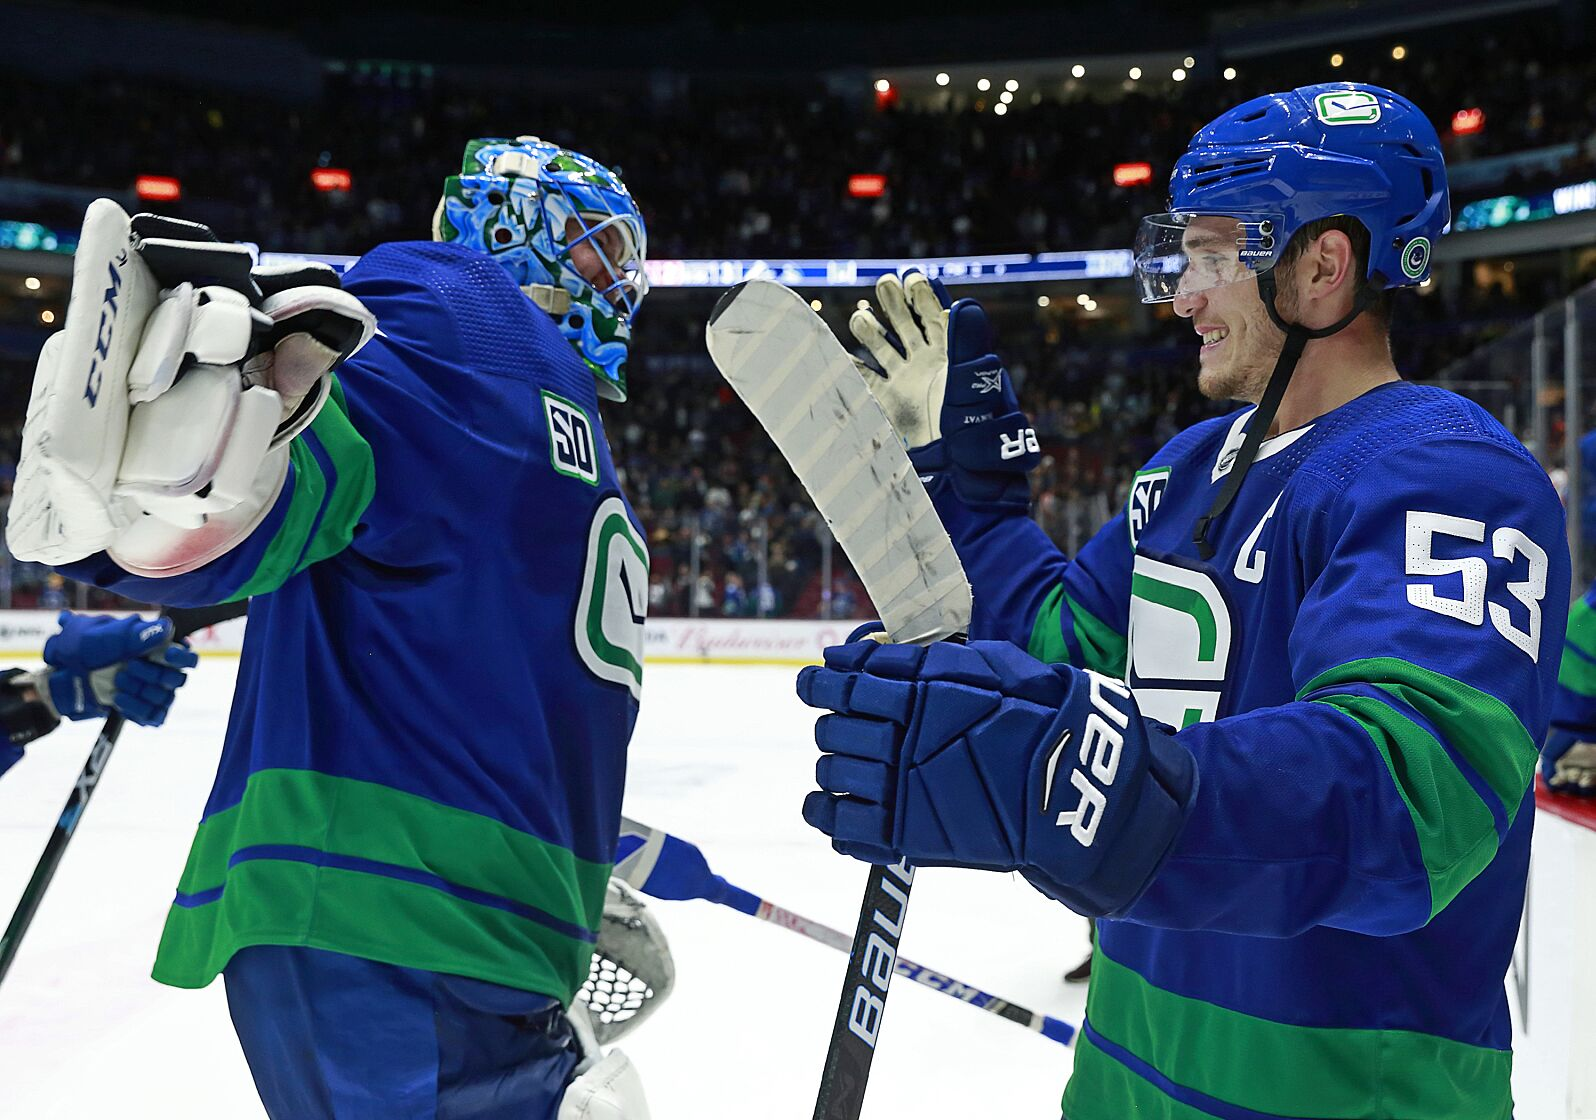 Quadrelli Report: Vancouver Canucks jersey wars begin in win over Flyers